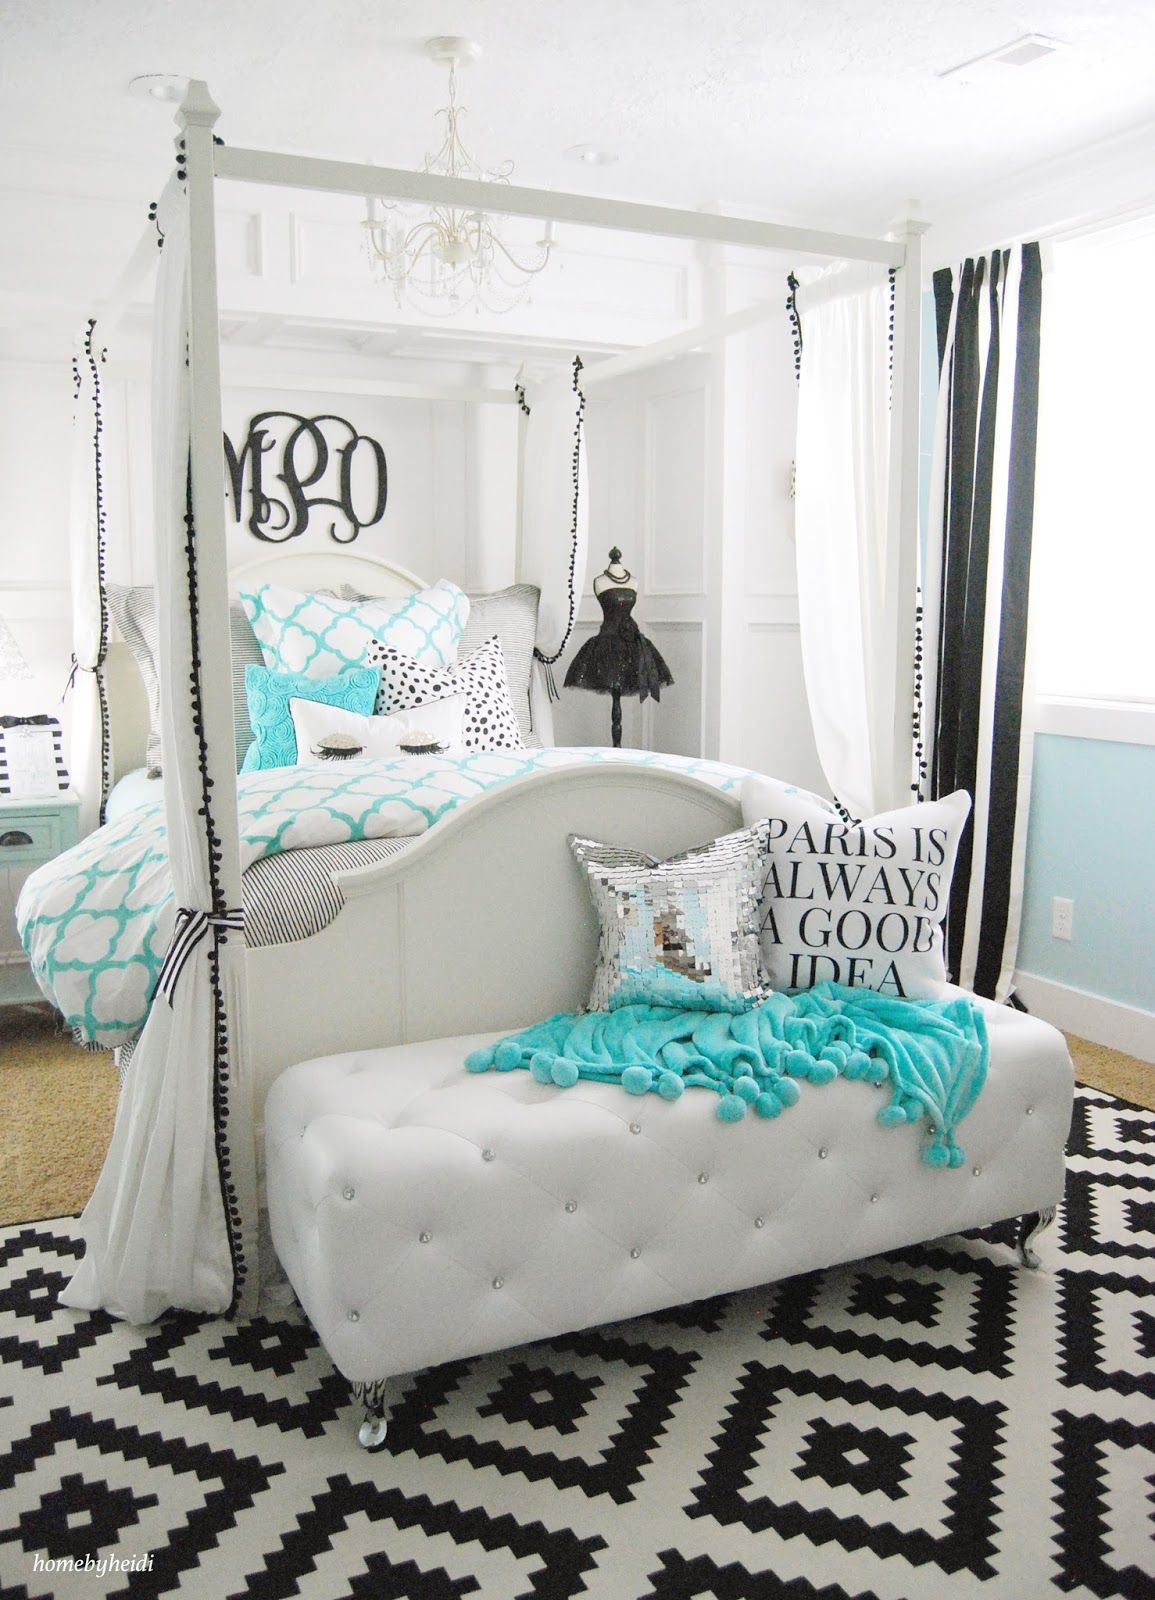 Teen Bed Ideas Mesmerizing Tiffany Inspired Bedroom  Bedroom Ideas  Pinterest  Tiffany Decorating Design